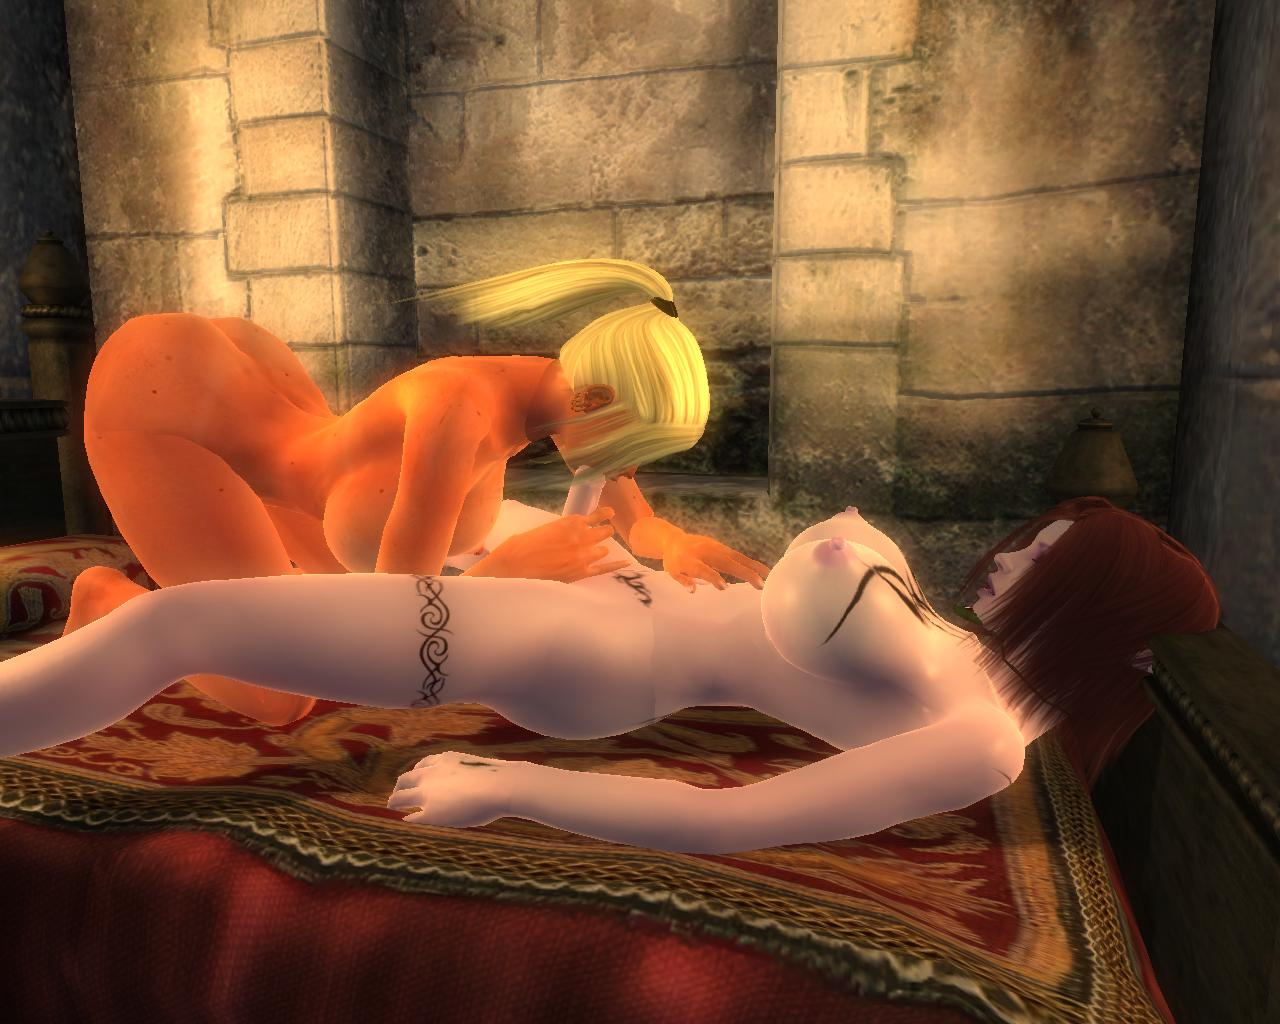 Oblivion sex animations mod hentai thumbs